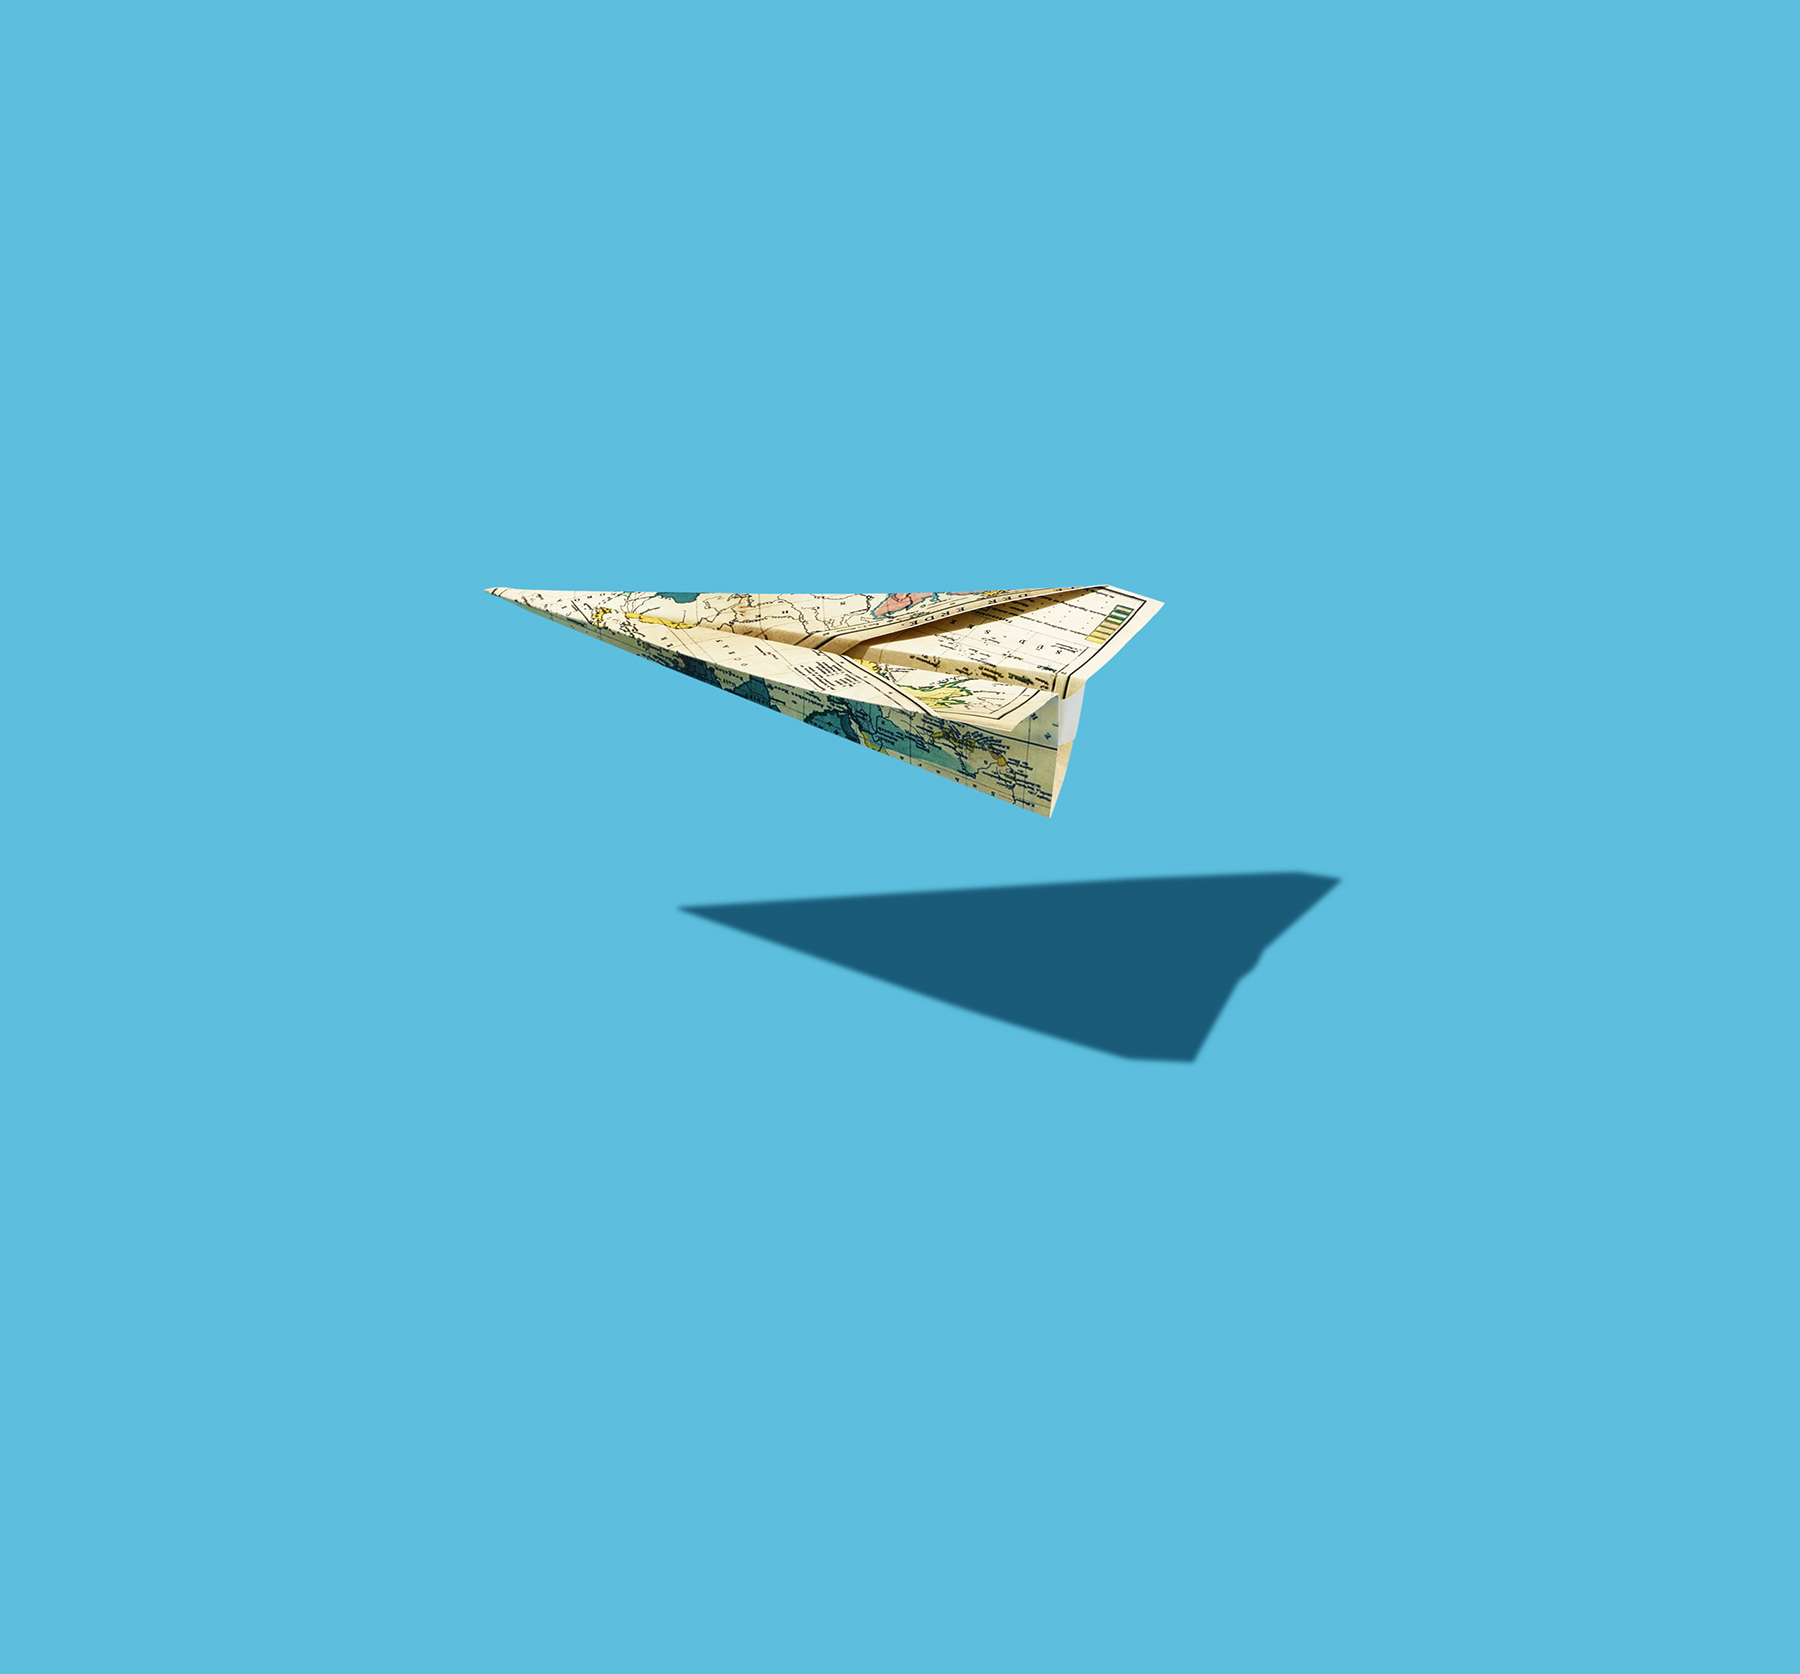 Paper plane on blue